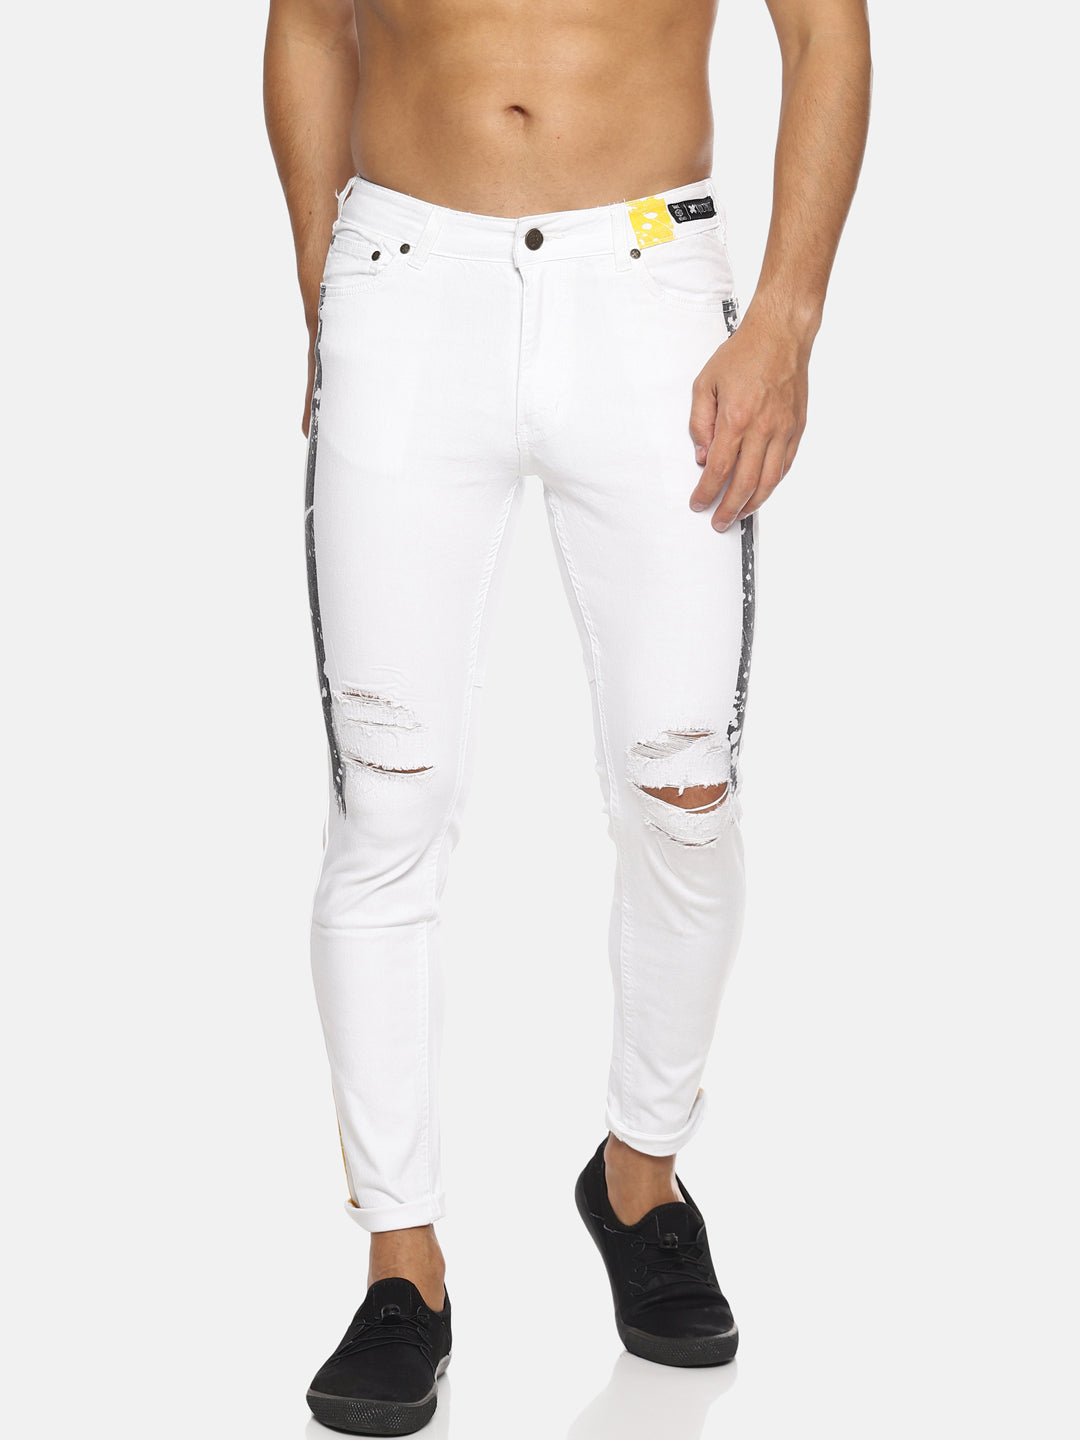 Kultprit Printed Distressed Jeans